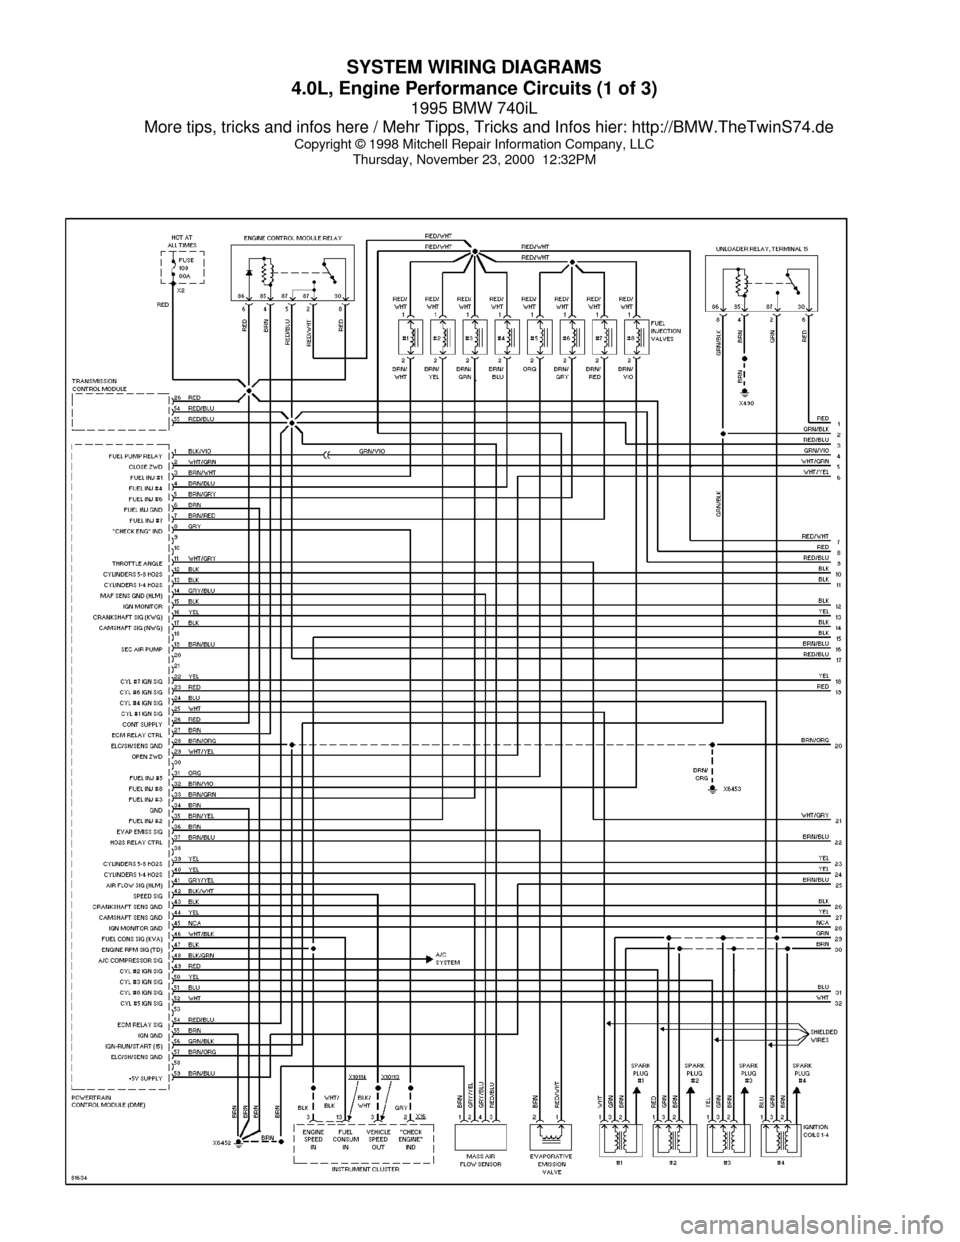 Bmw 740il 1995 e38 system wiring diagrams 1998 BMW 5 Series Wiring Diagram 1998 Bmw 750Il Wiring Diagram 1998 BMW Z3 Wiring Diagrams